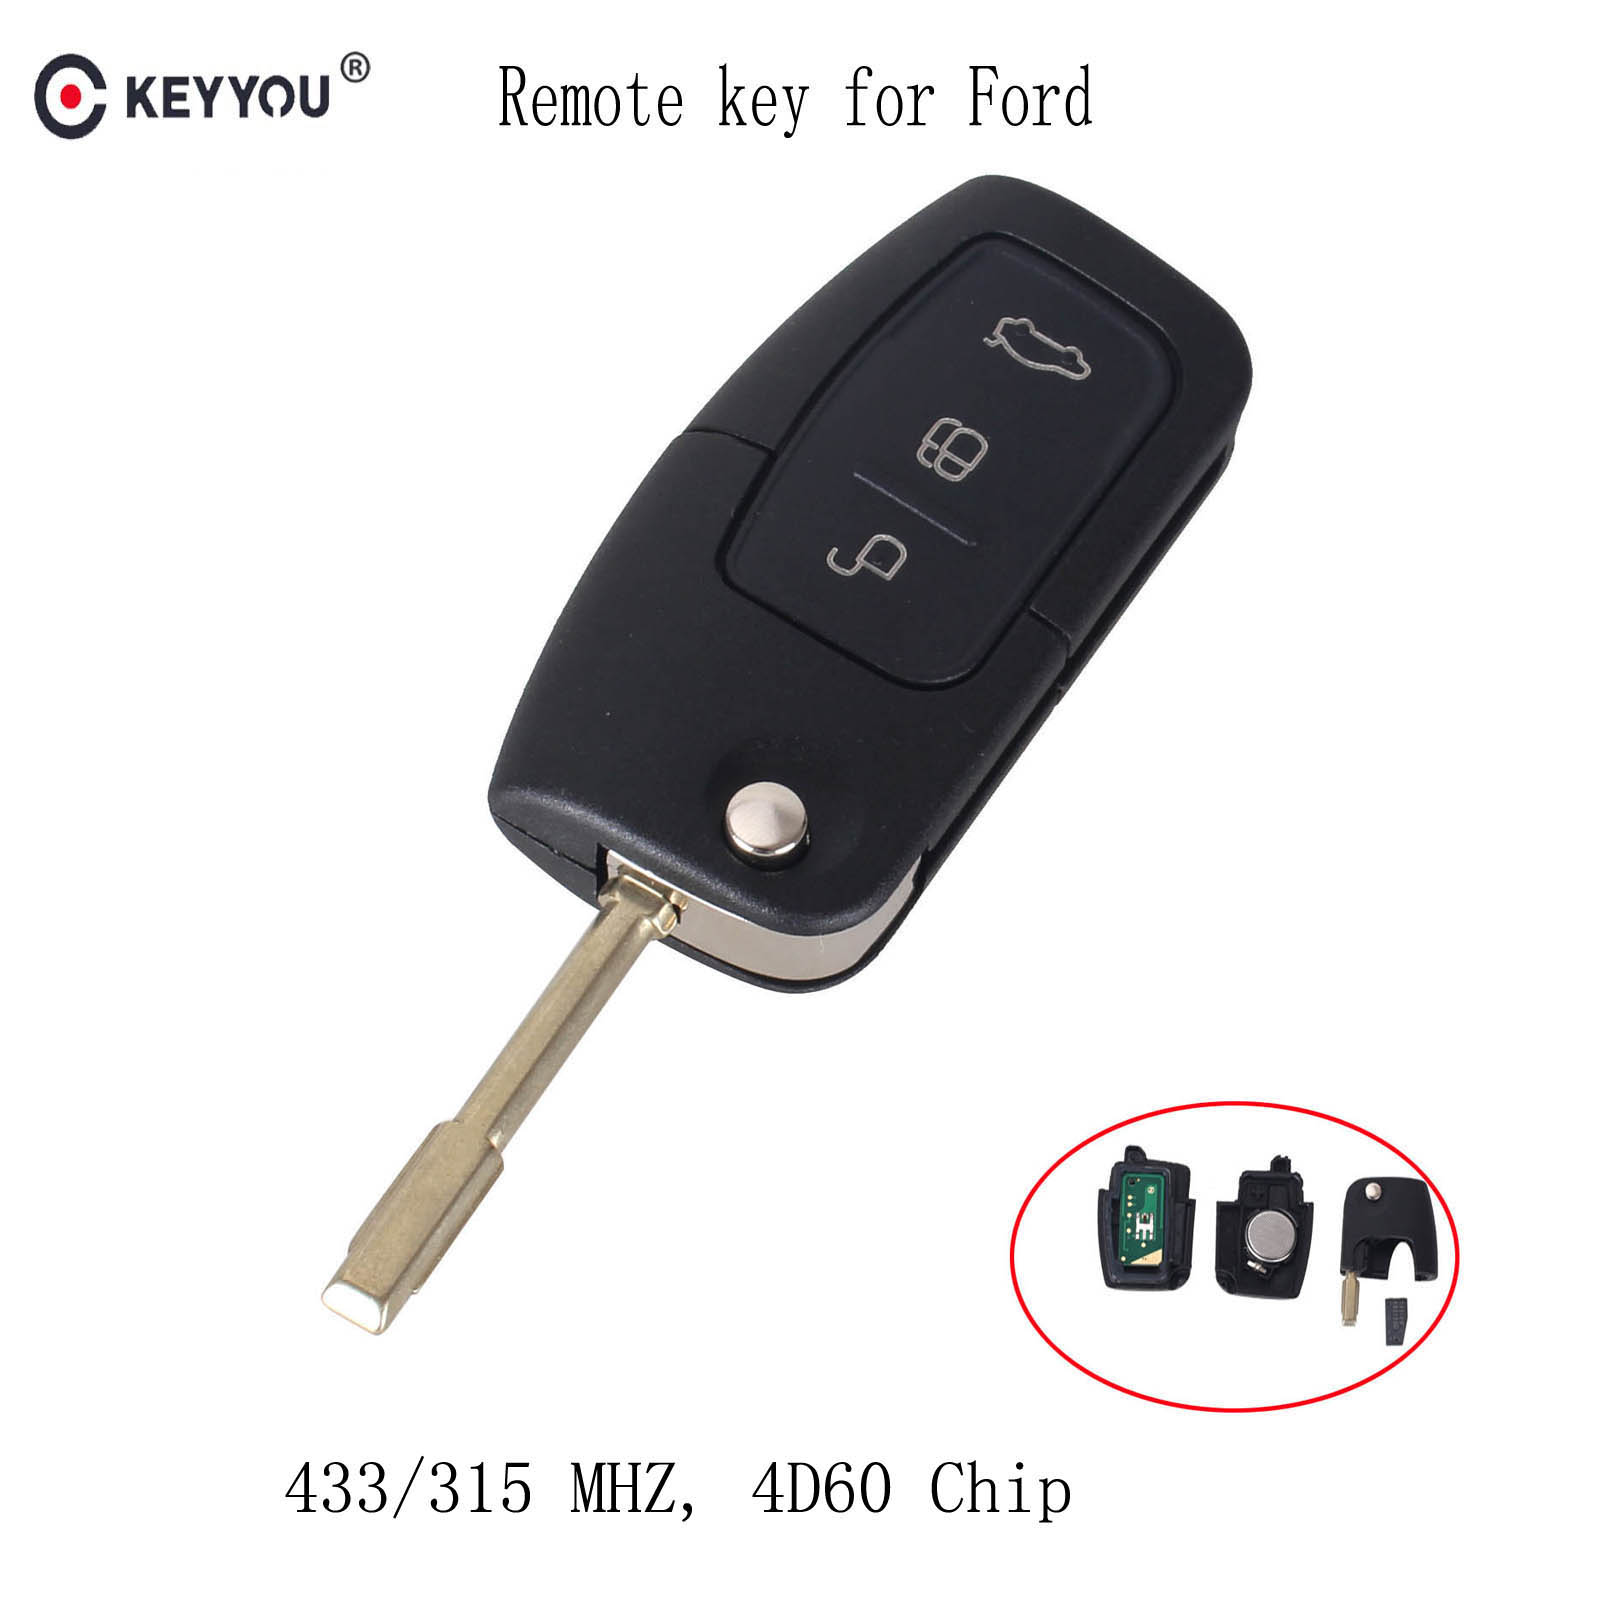 KEYYOU 433MHZ 4D60 Chip Car Remote Key Fit for Ford Fusion Focus Mondeo Fiesta Galaxy Automobile FO21 Blade Flip Auto KeyKEYYOU 433MHZ 4D60 Chip Car Remote Key Fit for Ford Fusion Focus Mondeo Fiesta Galaxy Automobile FO21 Blade Flip Auto Key